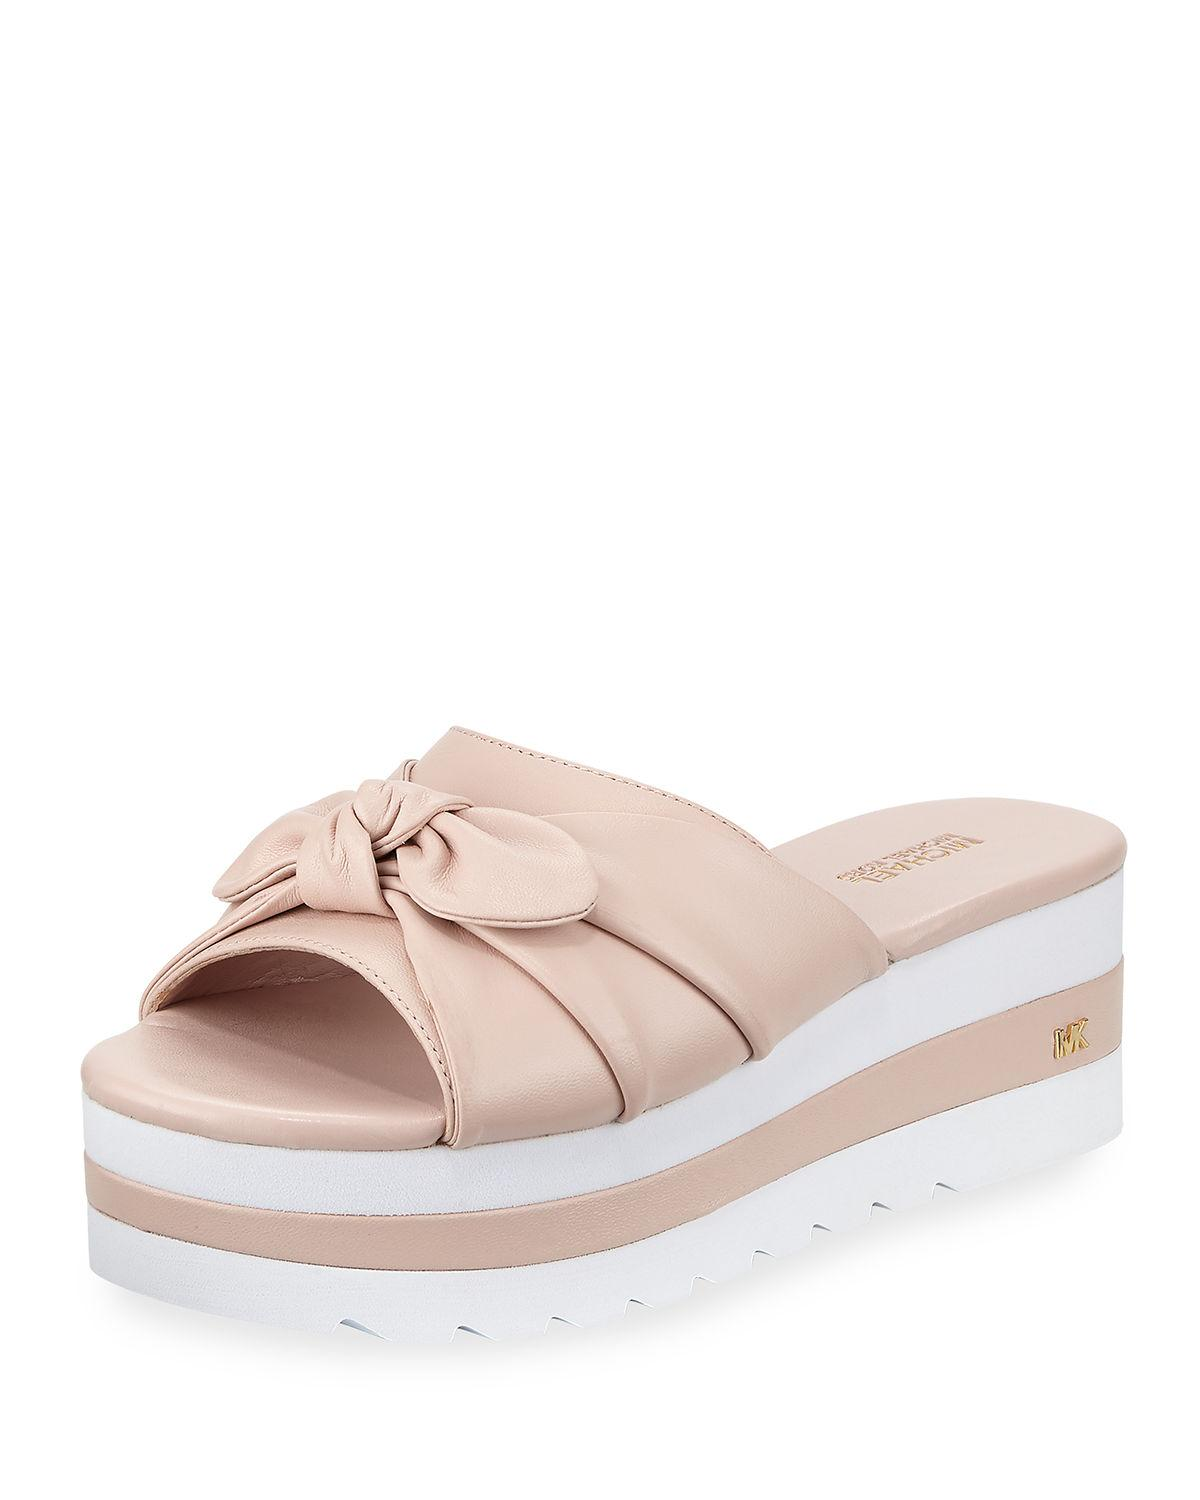 4b1691684c49 Michael Michael Kors Pippa Platform Slide Sandal With Bow In Soft Pink